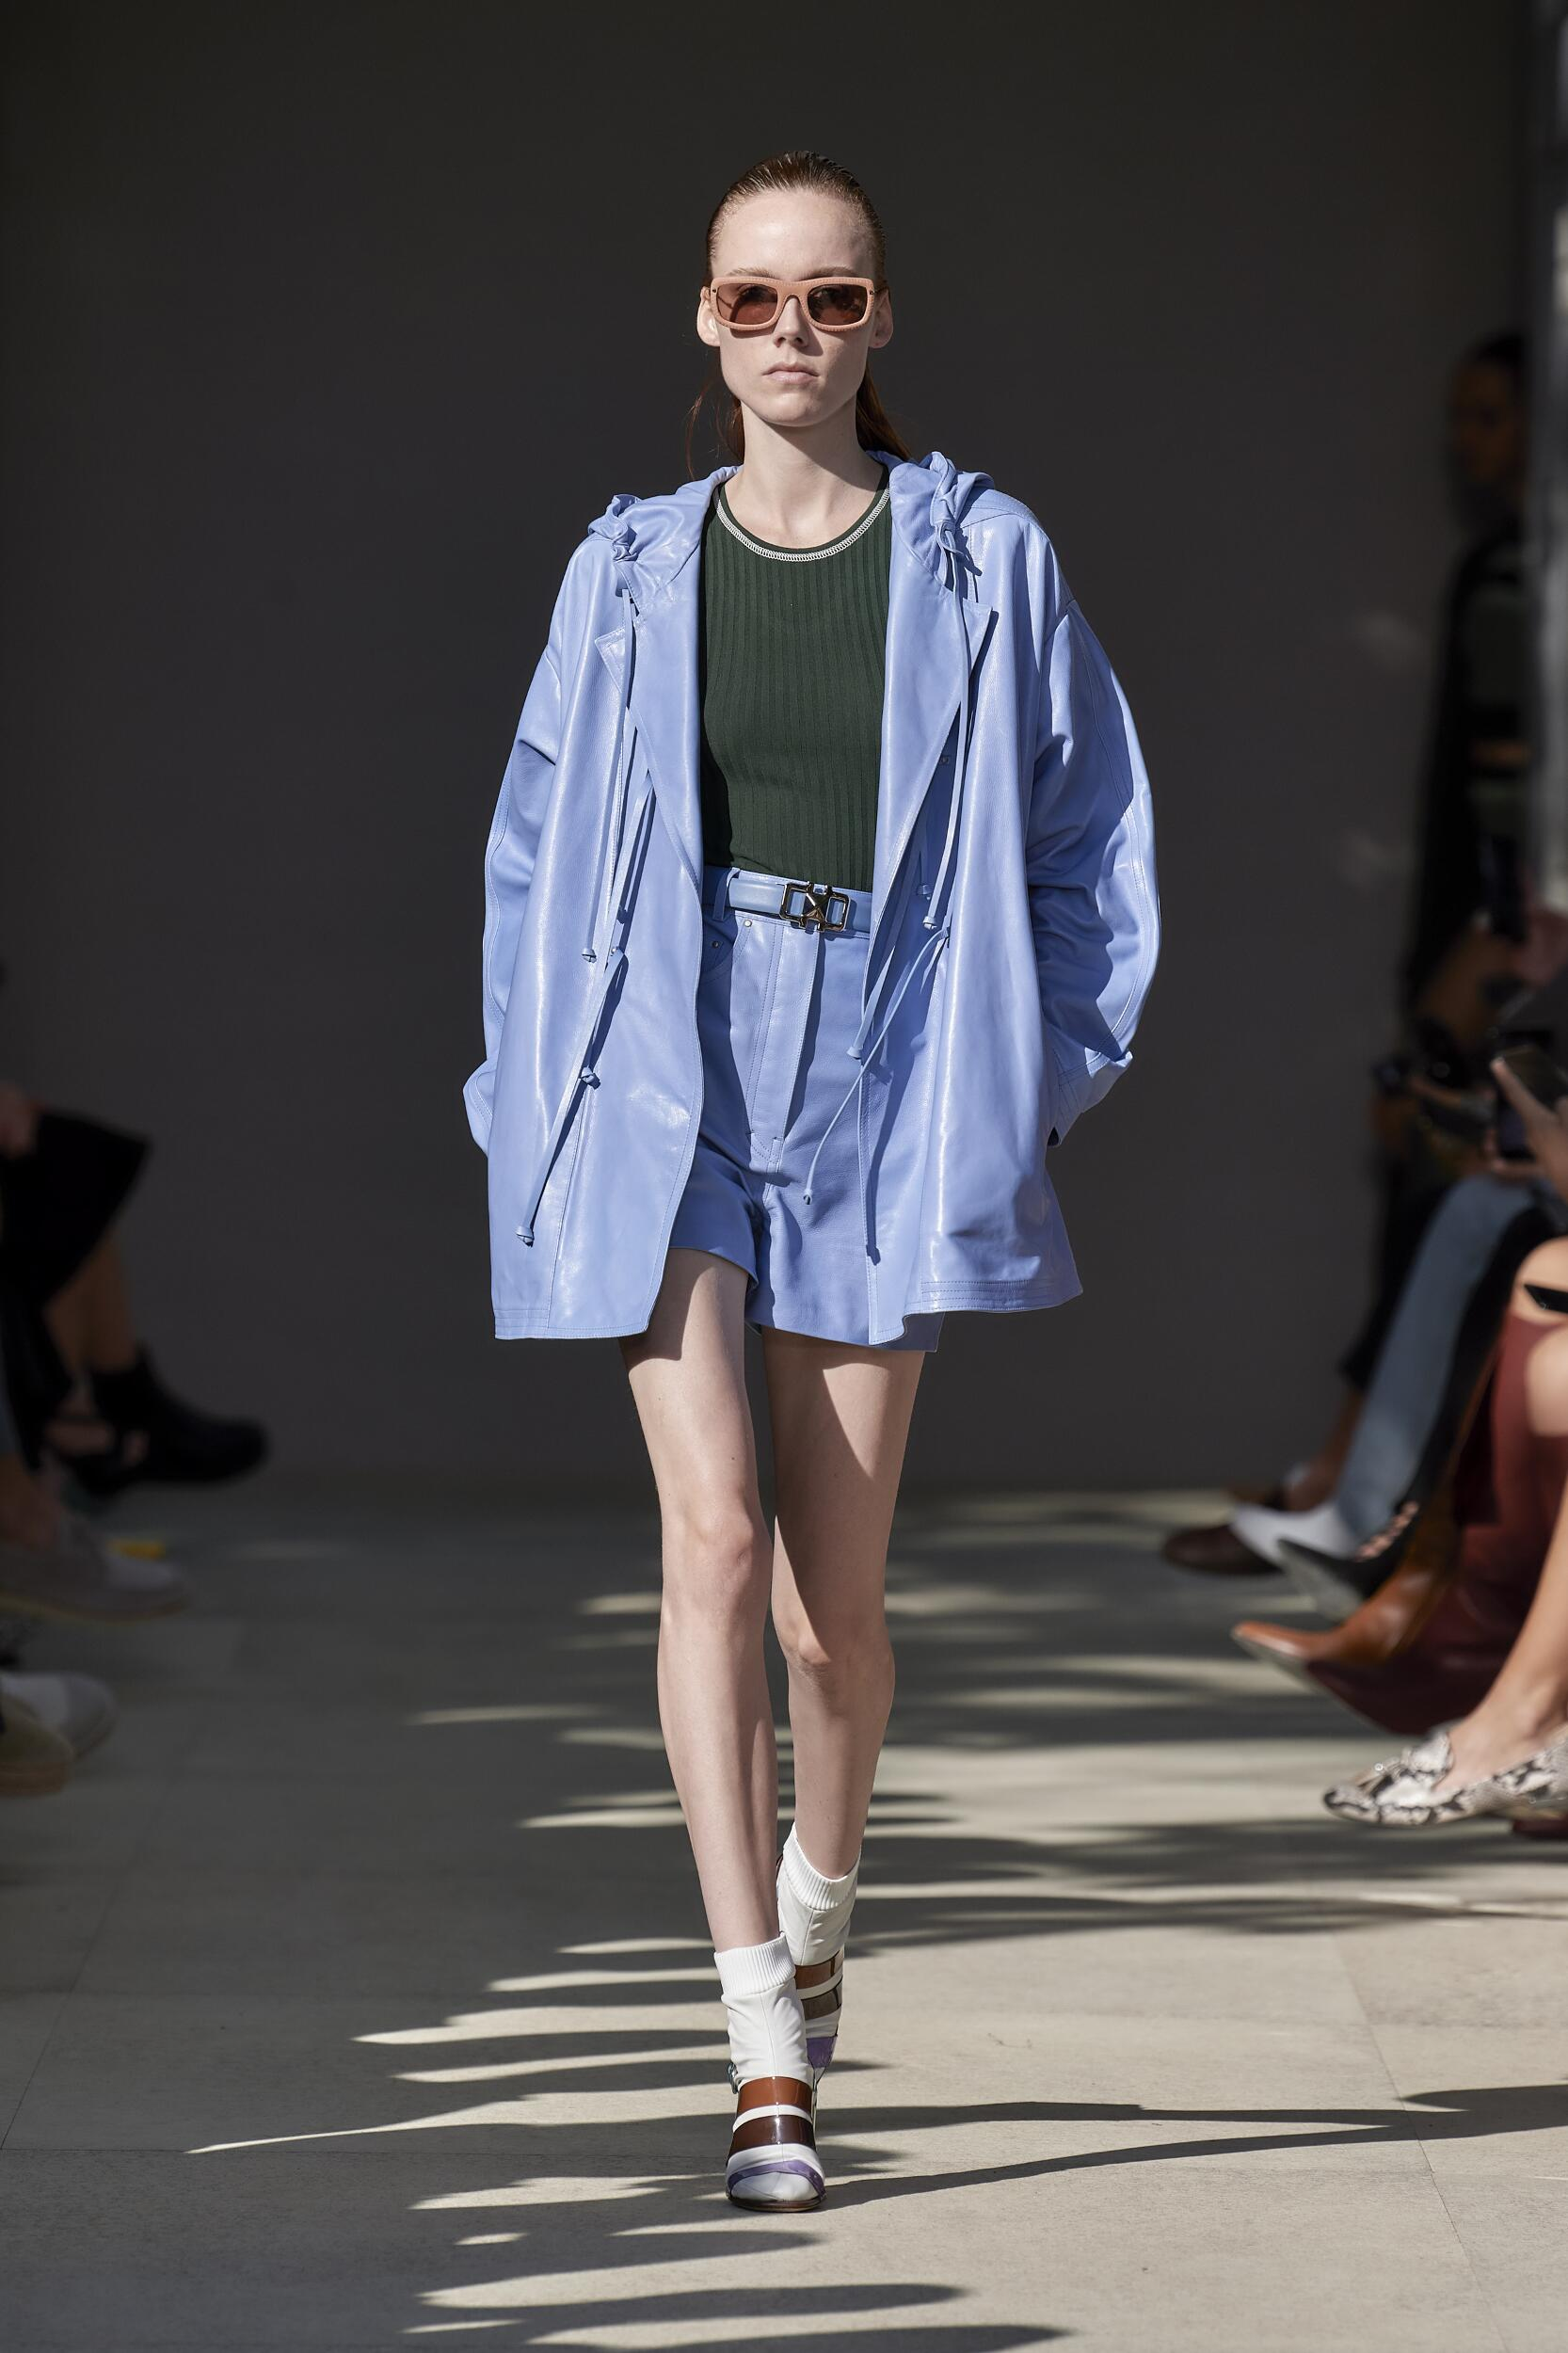 Catwalk Salvatore Ferragamo Woman Fashion Show Summer 2020